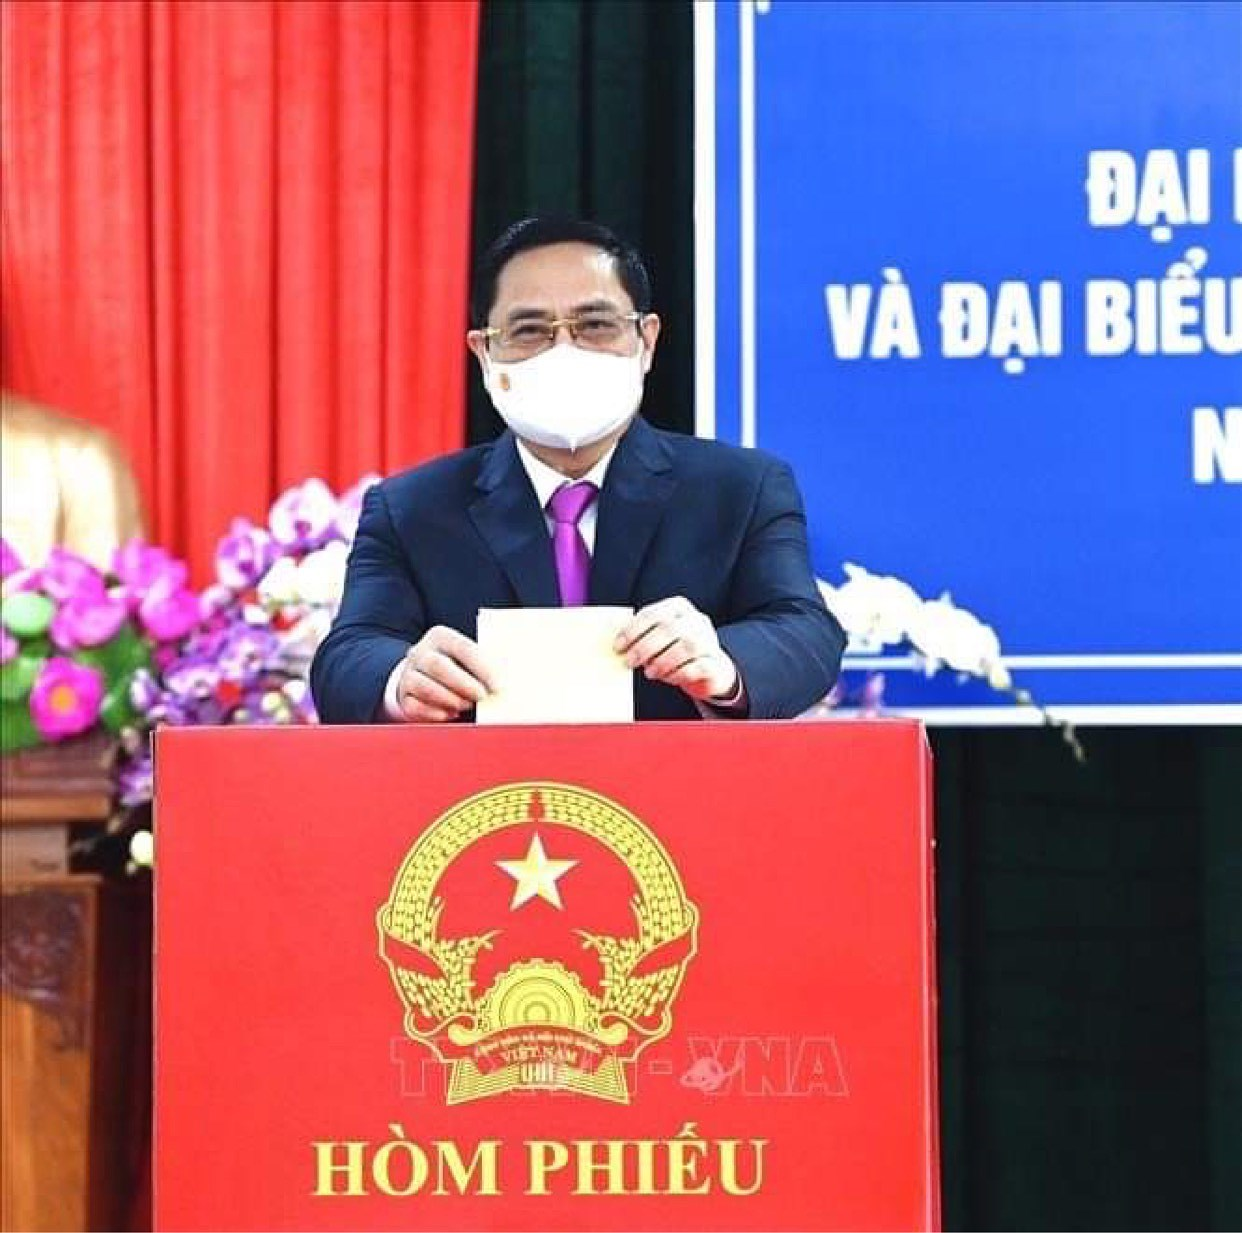 Voters nationwide cast ballots hinh anh 9